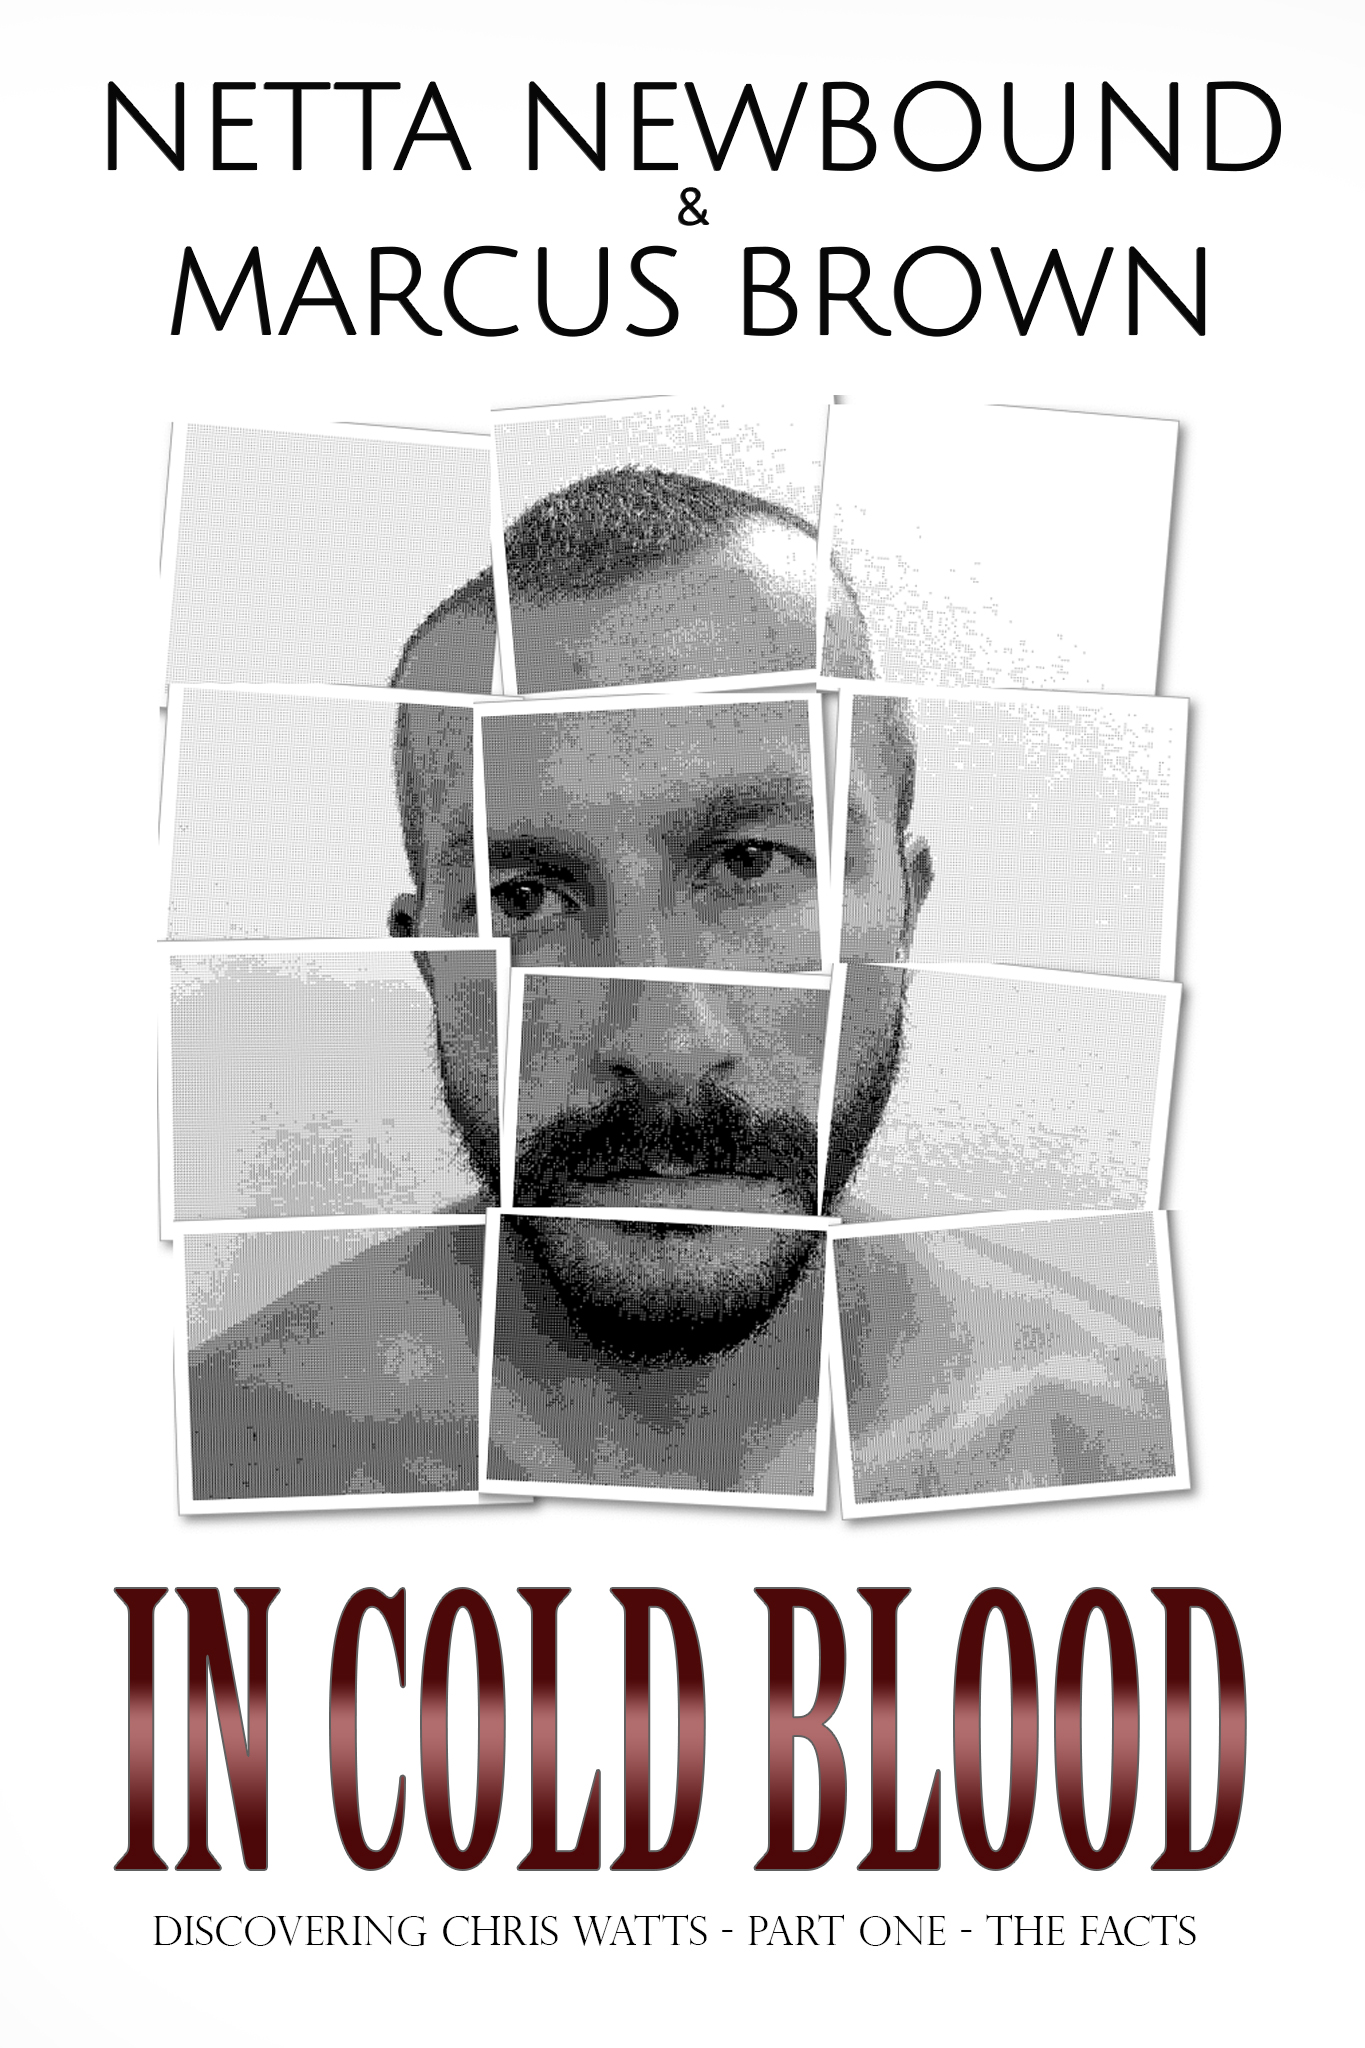 In Cold Blood: Discovering Chris Watts - Part One - The Facts